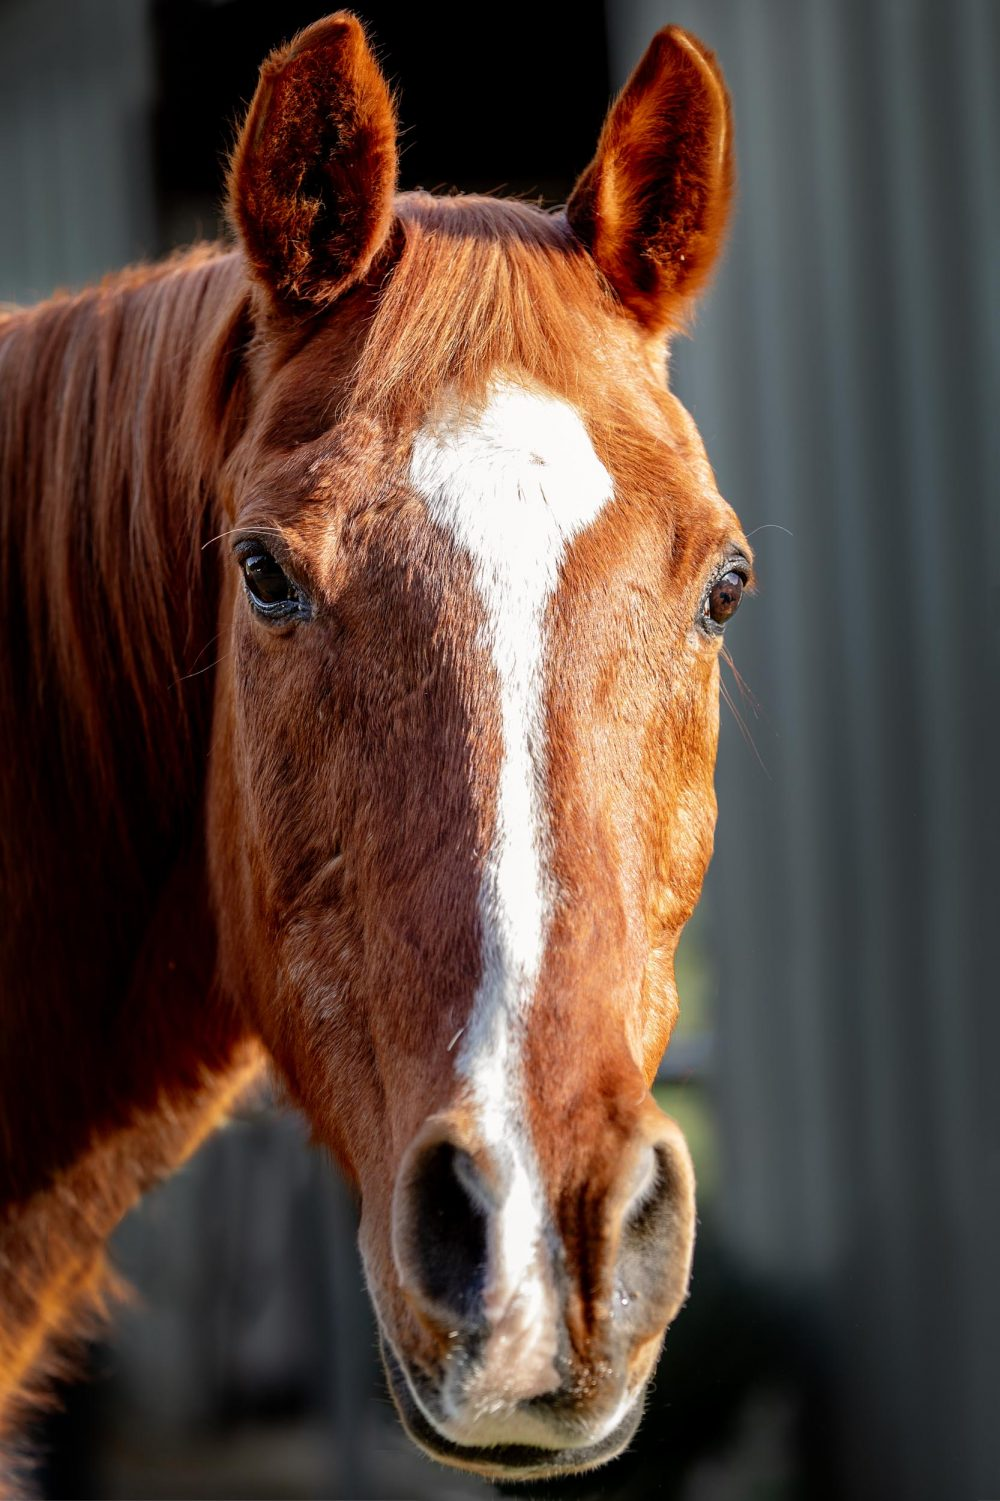 Equine professional photography